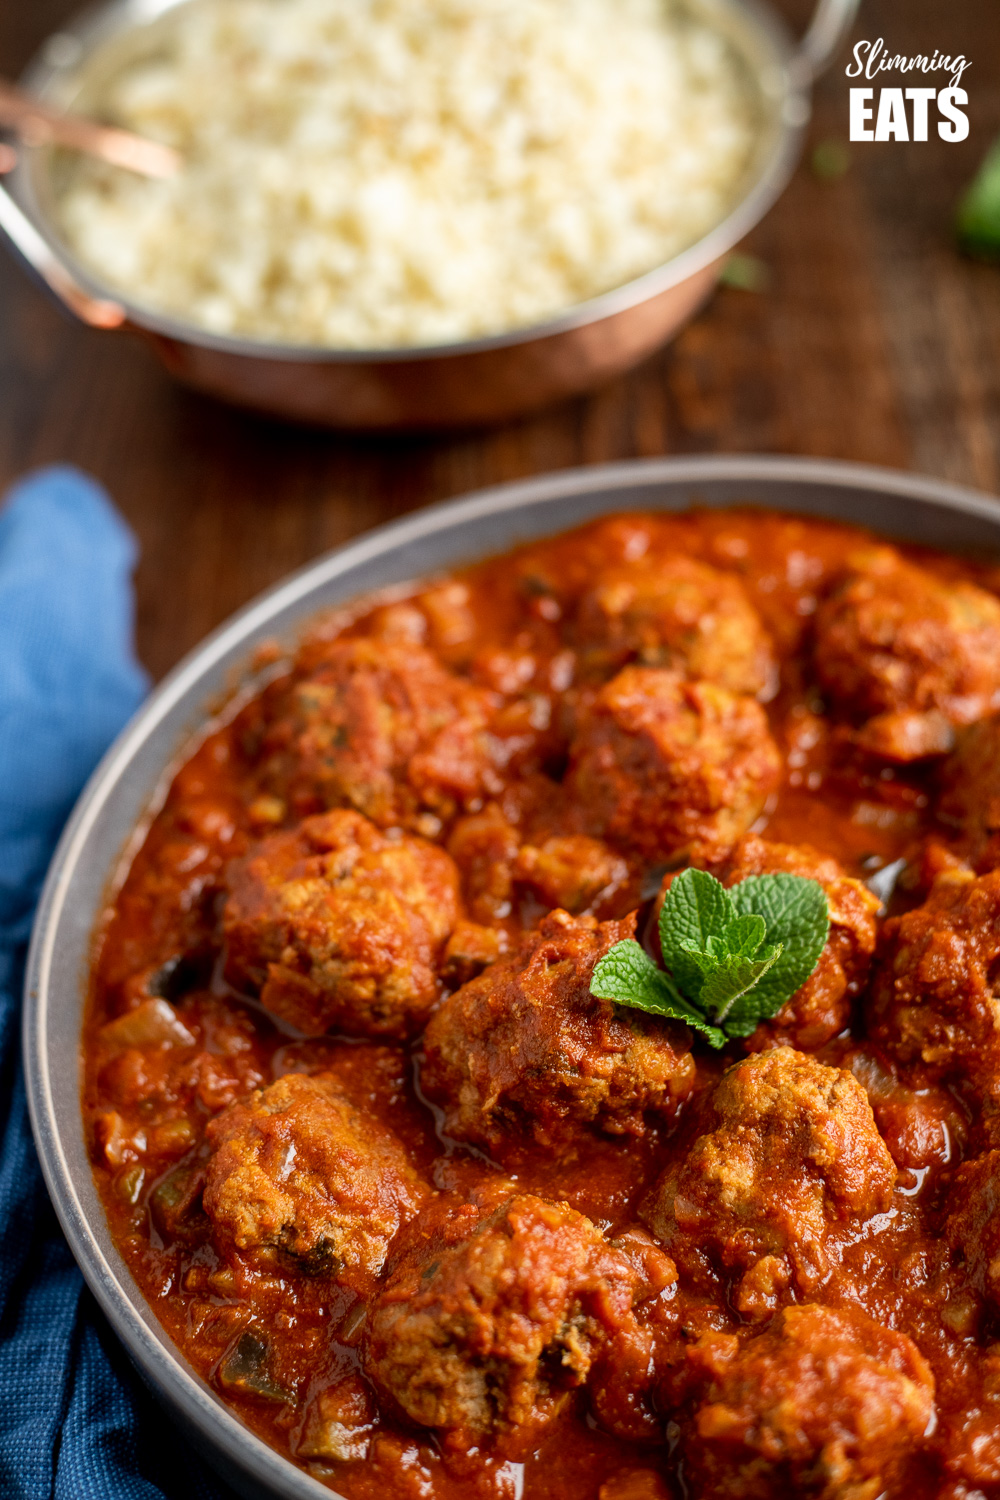 lamb and mint meatballs in a sweet and spicy sauce in a grey bowl on wooden board